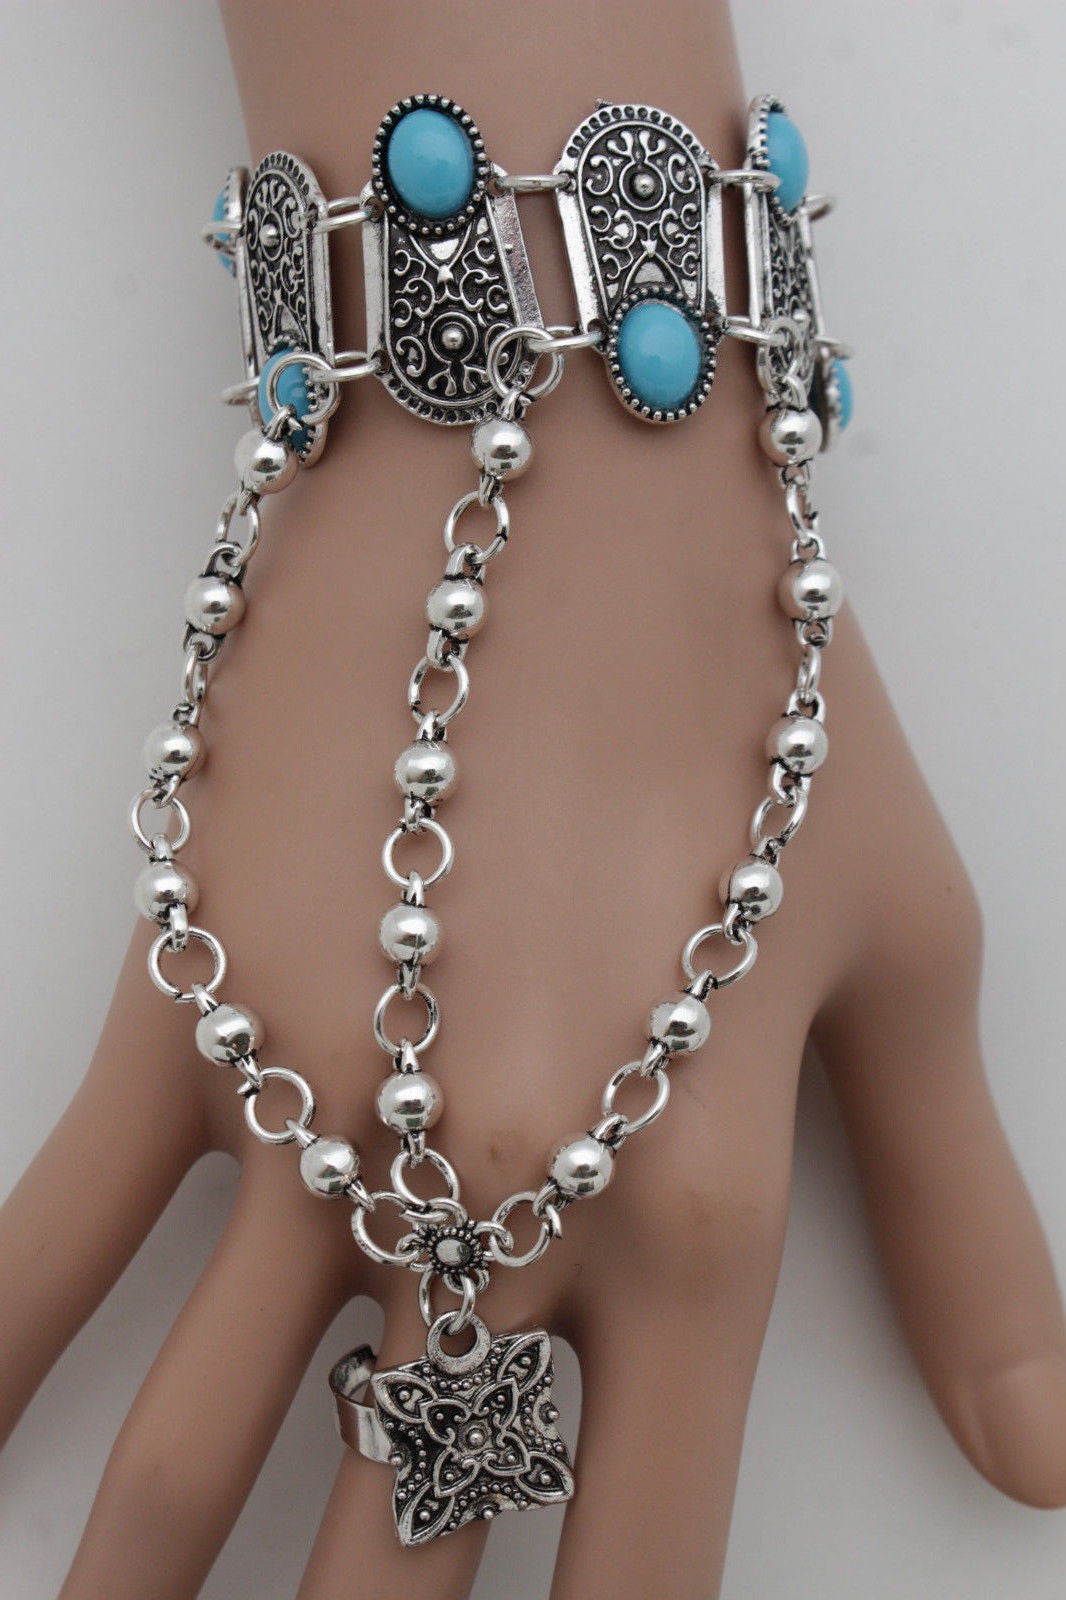 Silver Metal Hand Bracelet Slave Ring Turquoise Blue Beads Ethnic